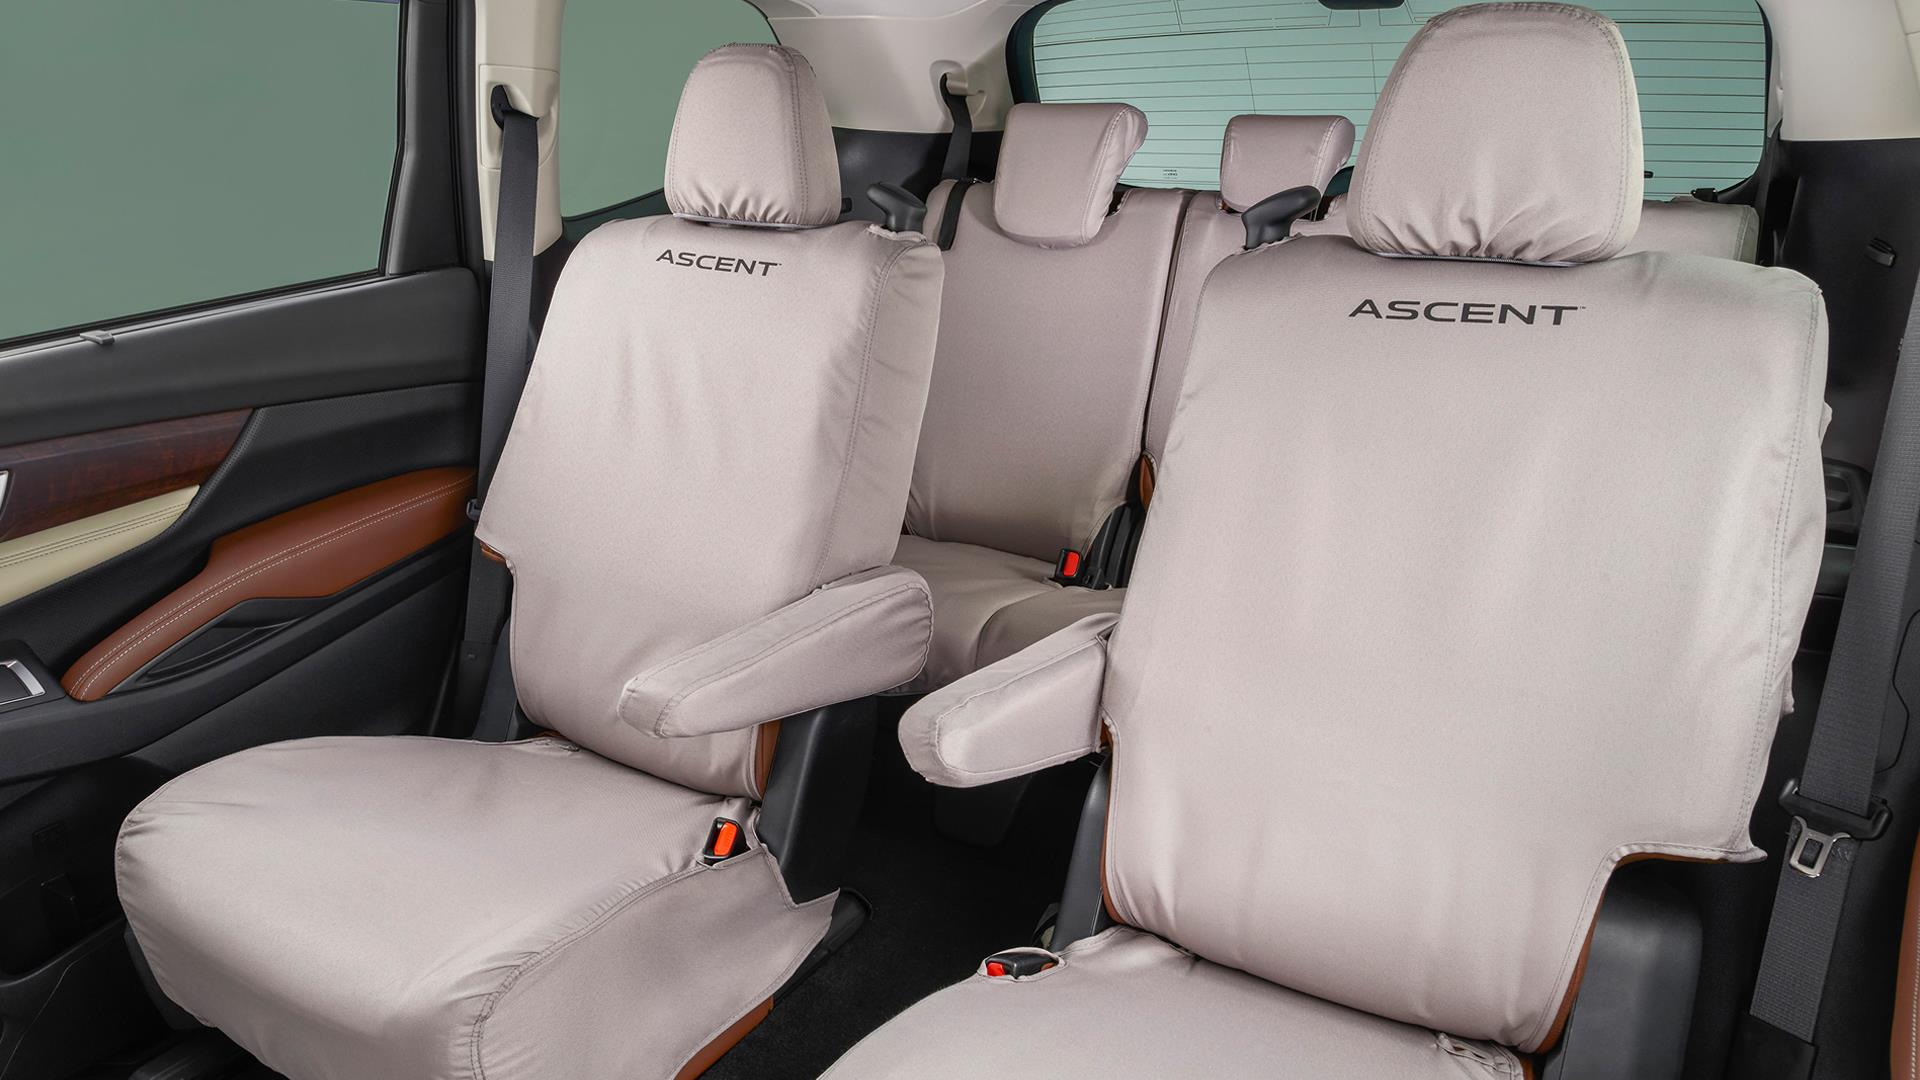 Seat Cover - 2nd Row Captain's Chairs. Keep your second row. image for your Subaru Ascent